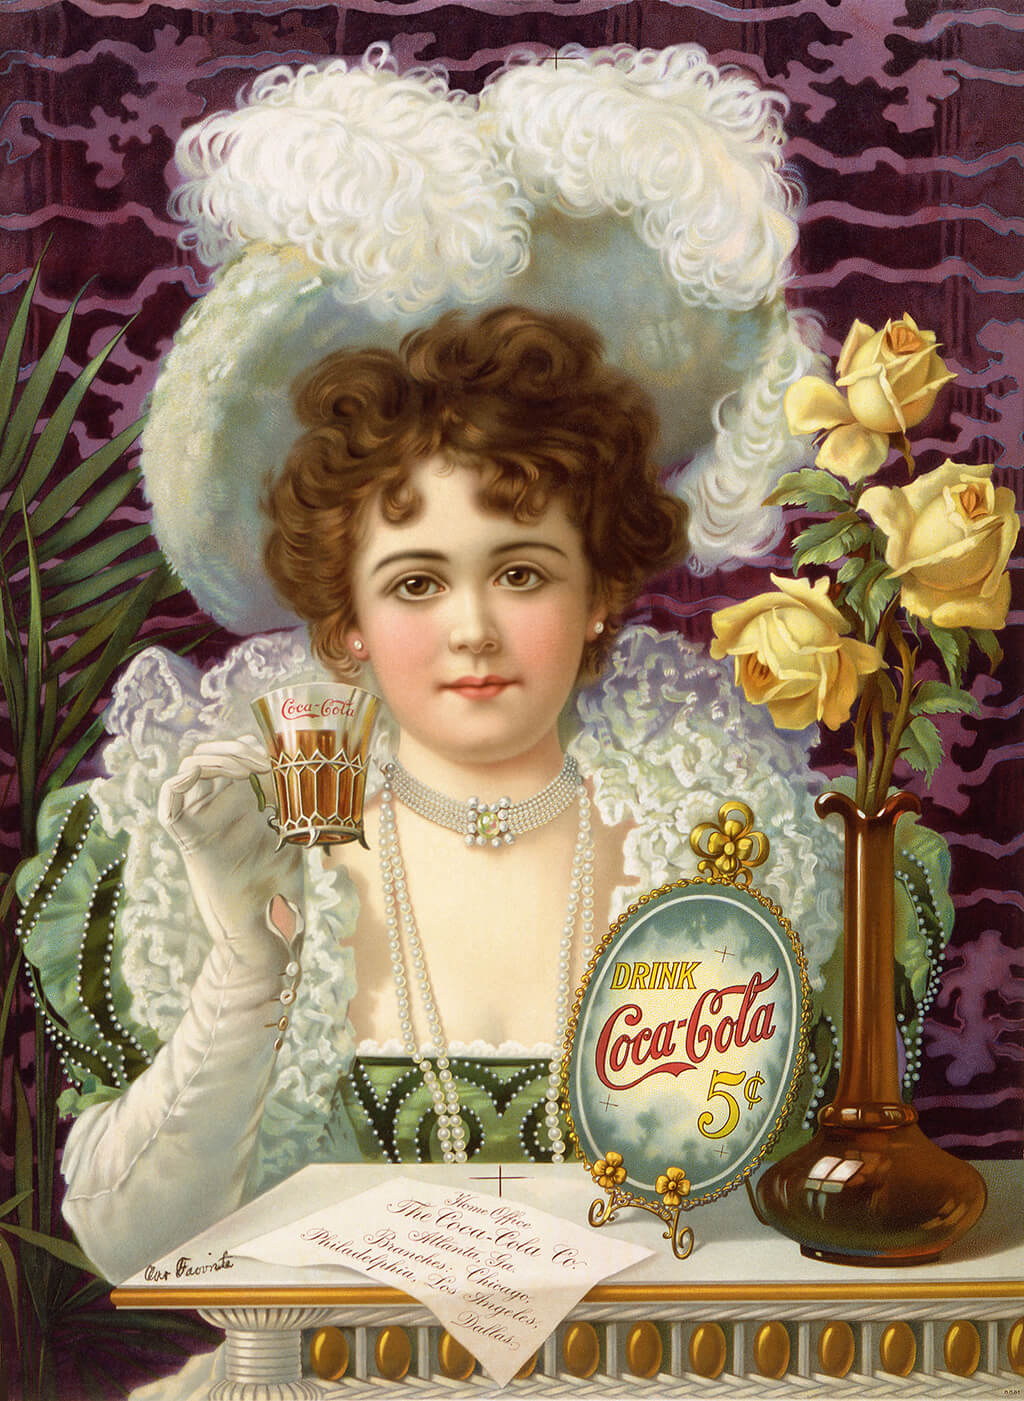 """Drink Coca-Cola 5¢"", an 1890s advertising poster showing a woman in fancy clothes (partially vaguely influenced by 16th- and 17th-century styles) drinking Coke."